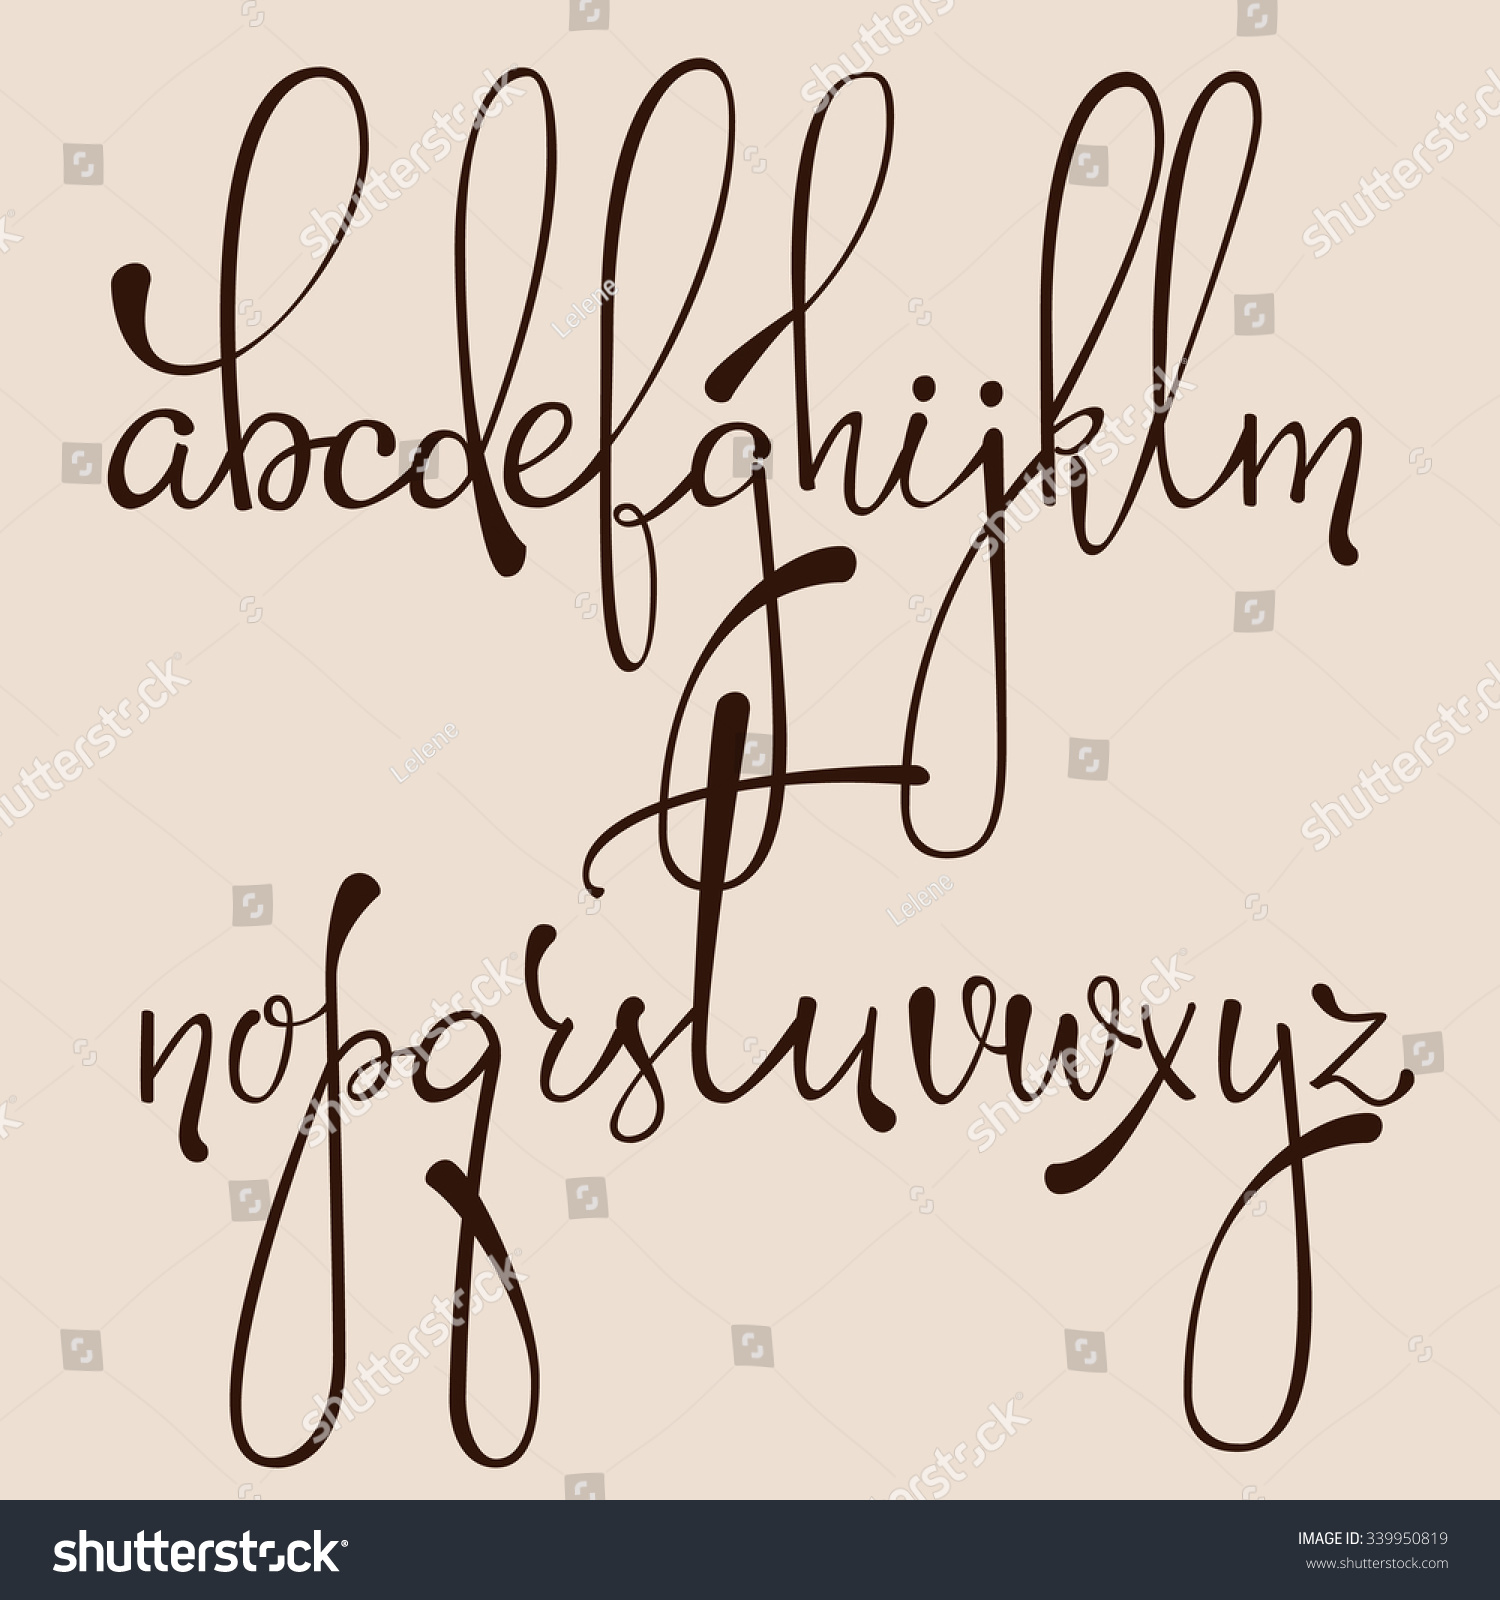 Cute Letter Fonts And Styles - Kenetiks.com